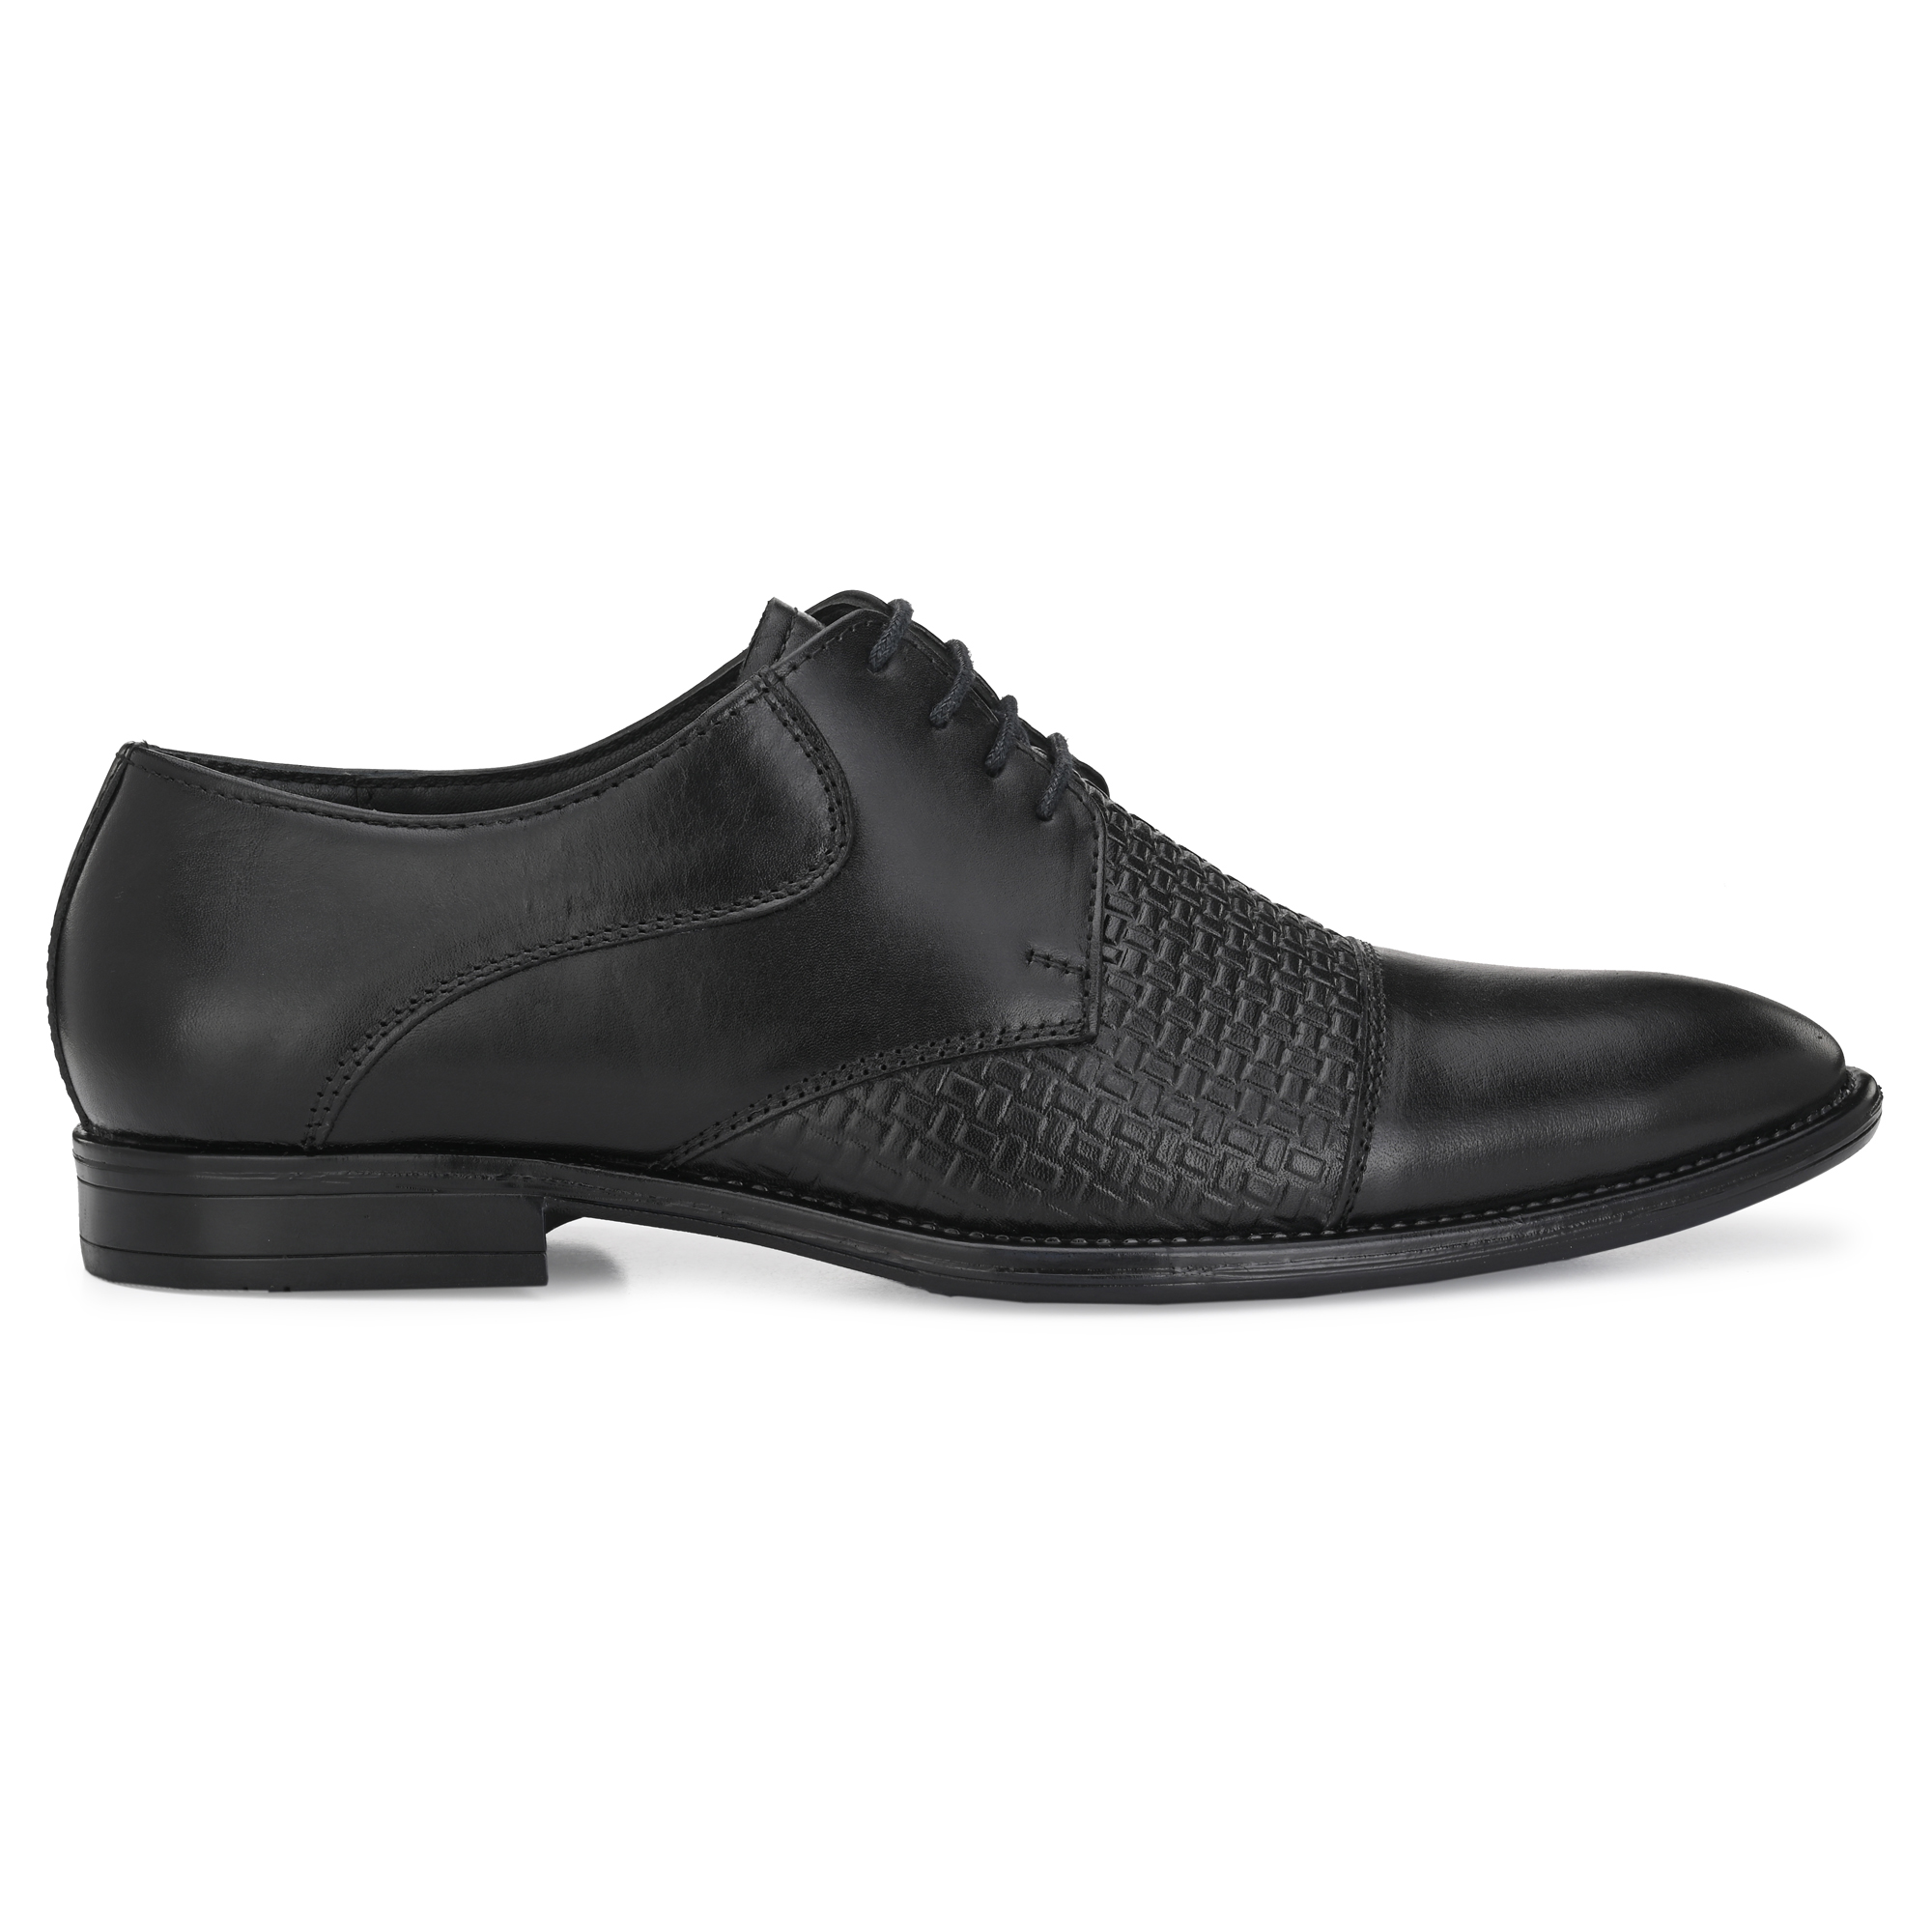 BRIFAR COMFORTABLE & TRENDY GENUINE LEATHERS FORMAL SHOES ARE RELIABLE FOR ANY MJ9BK1 (7-10, BLACK, 4 PAIR)